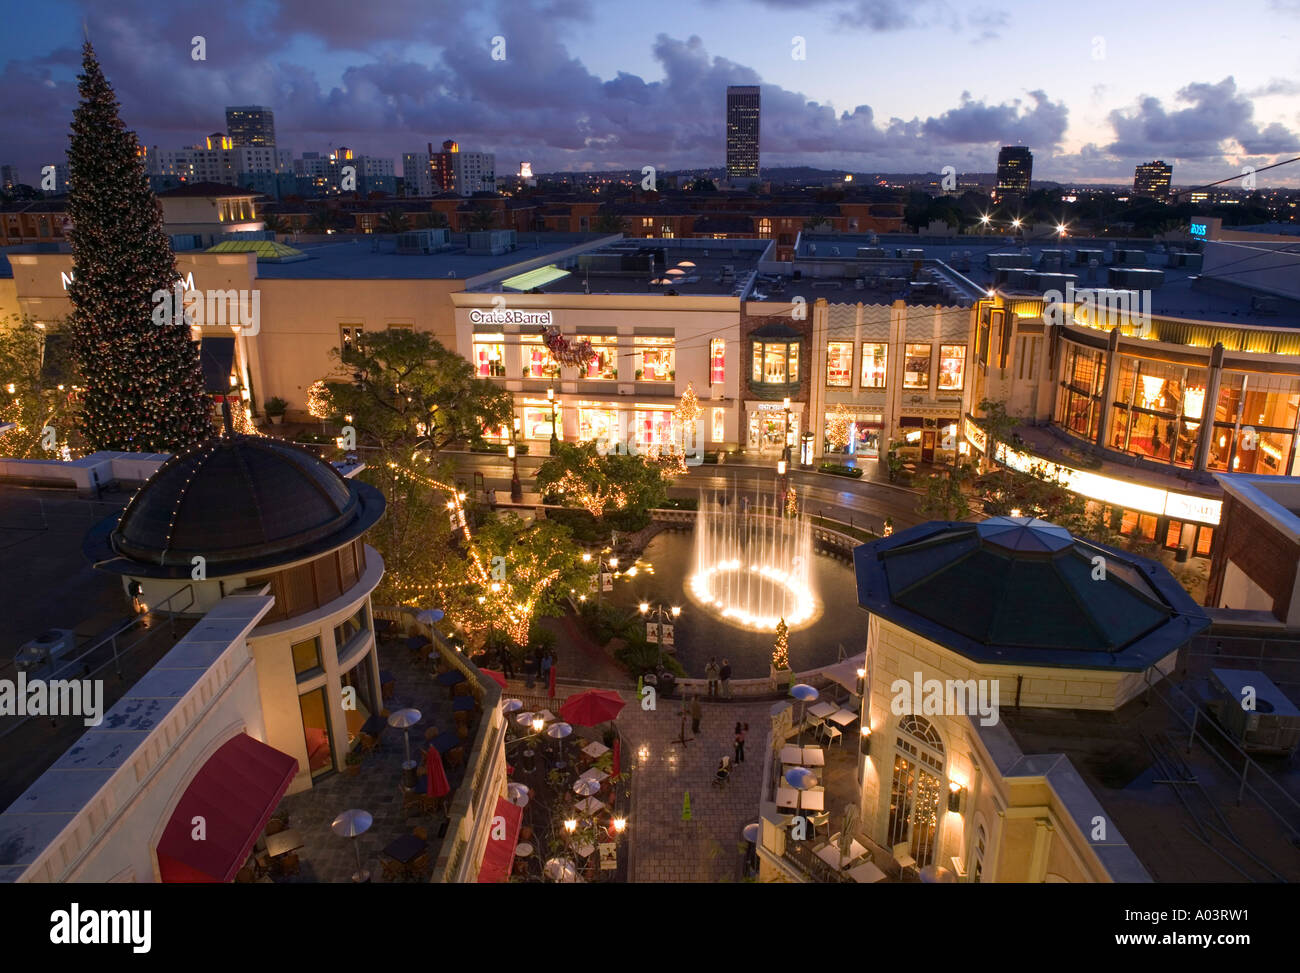 The Grove Mall West Hollywood Los Angeles California Usa Stock Photo 5640400 Alamy